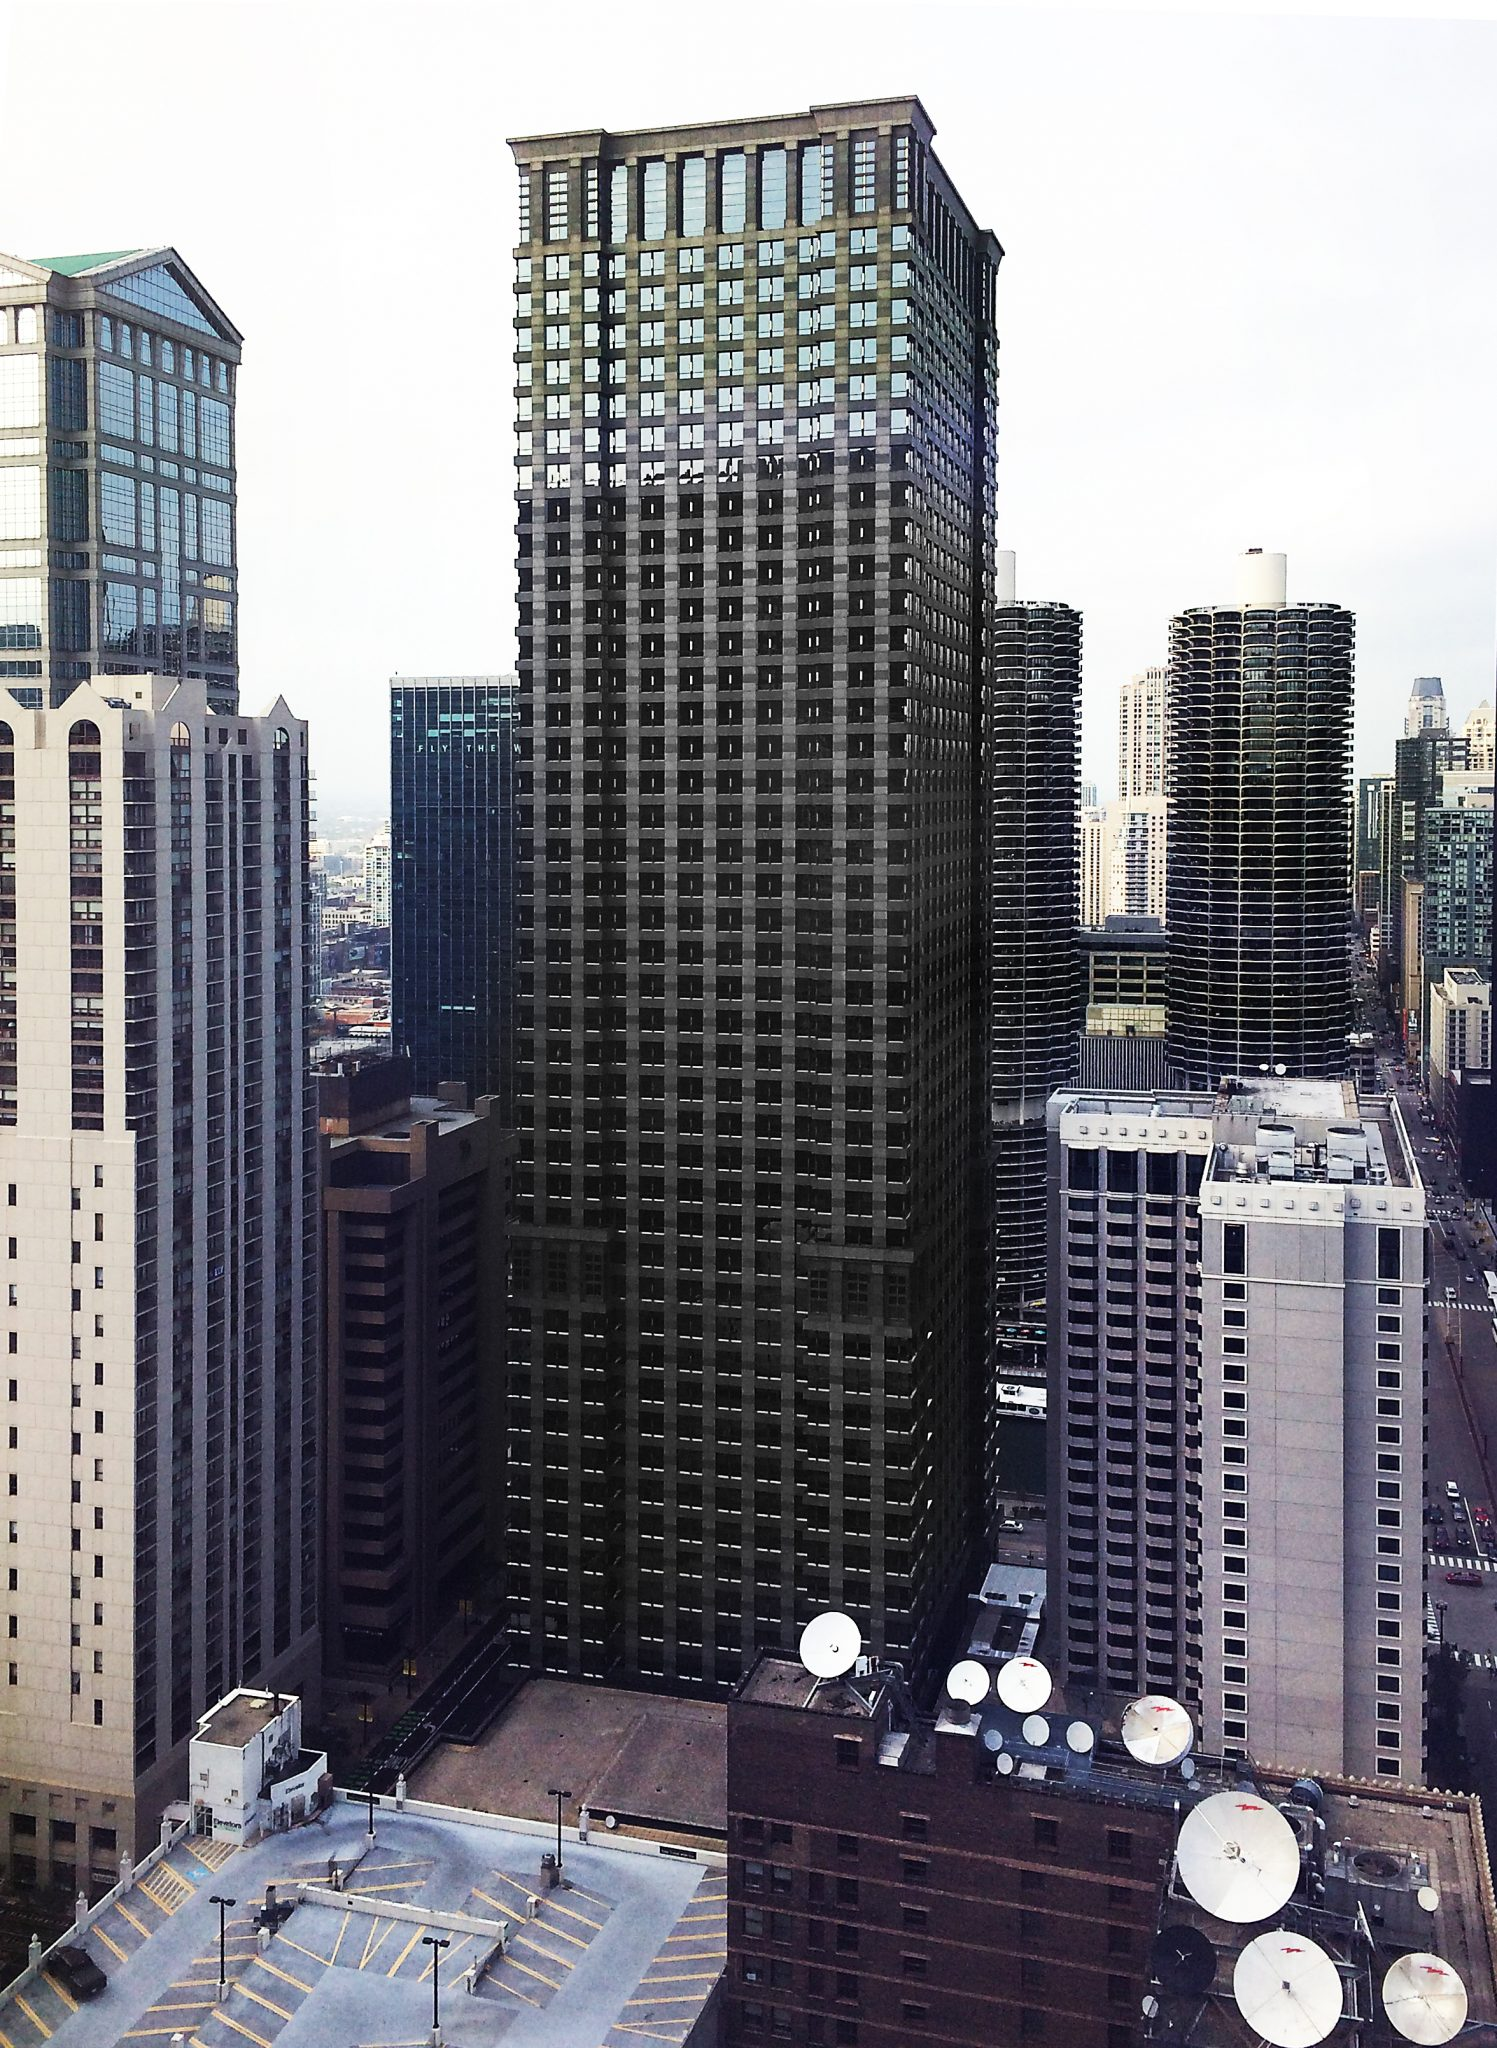 Leo Burnett Building Chicago viewed from mid point framed by other buildings